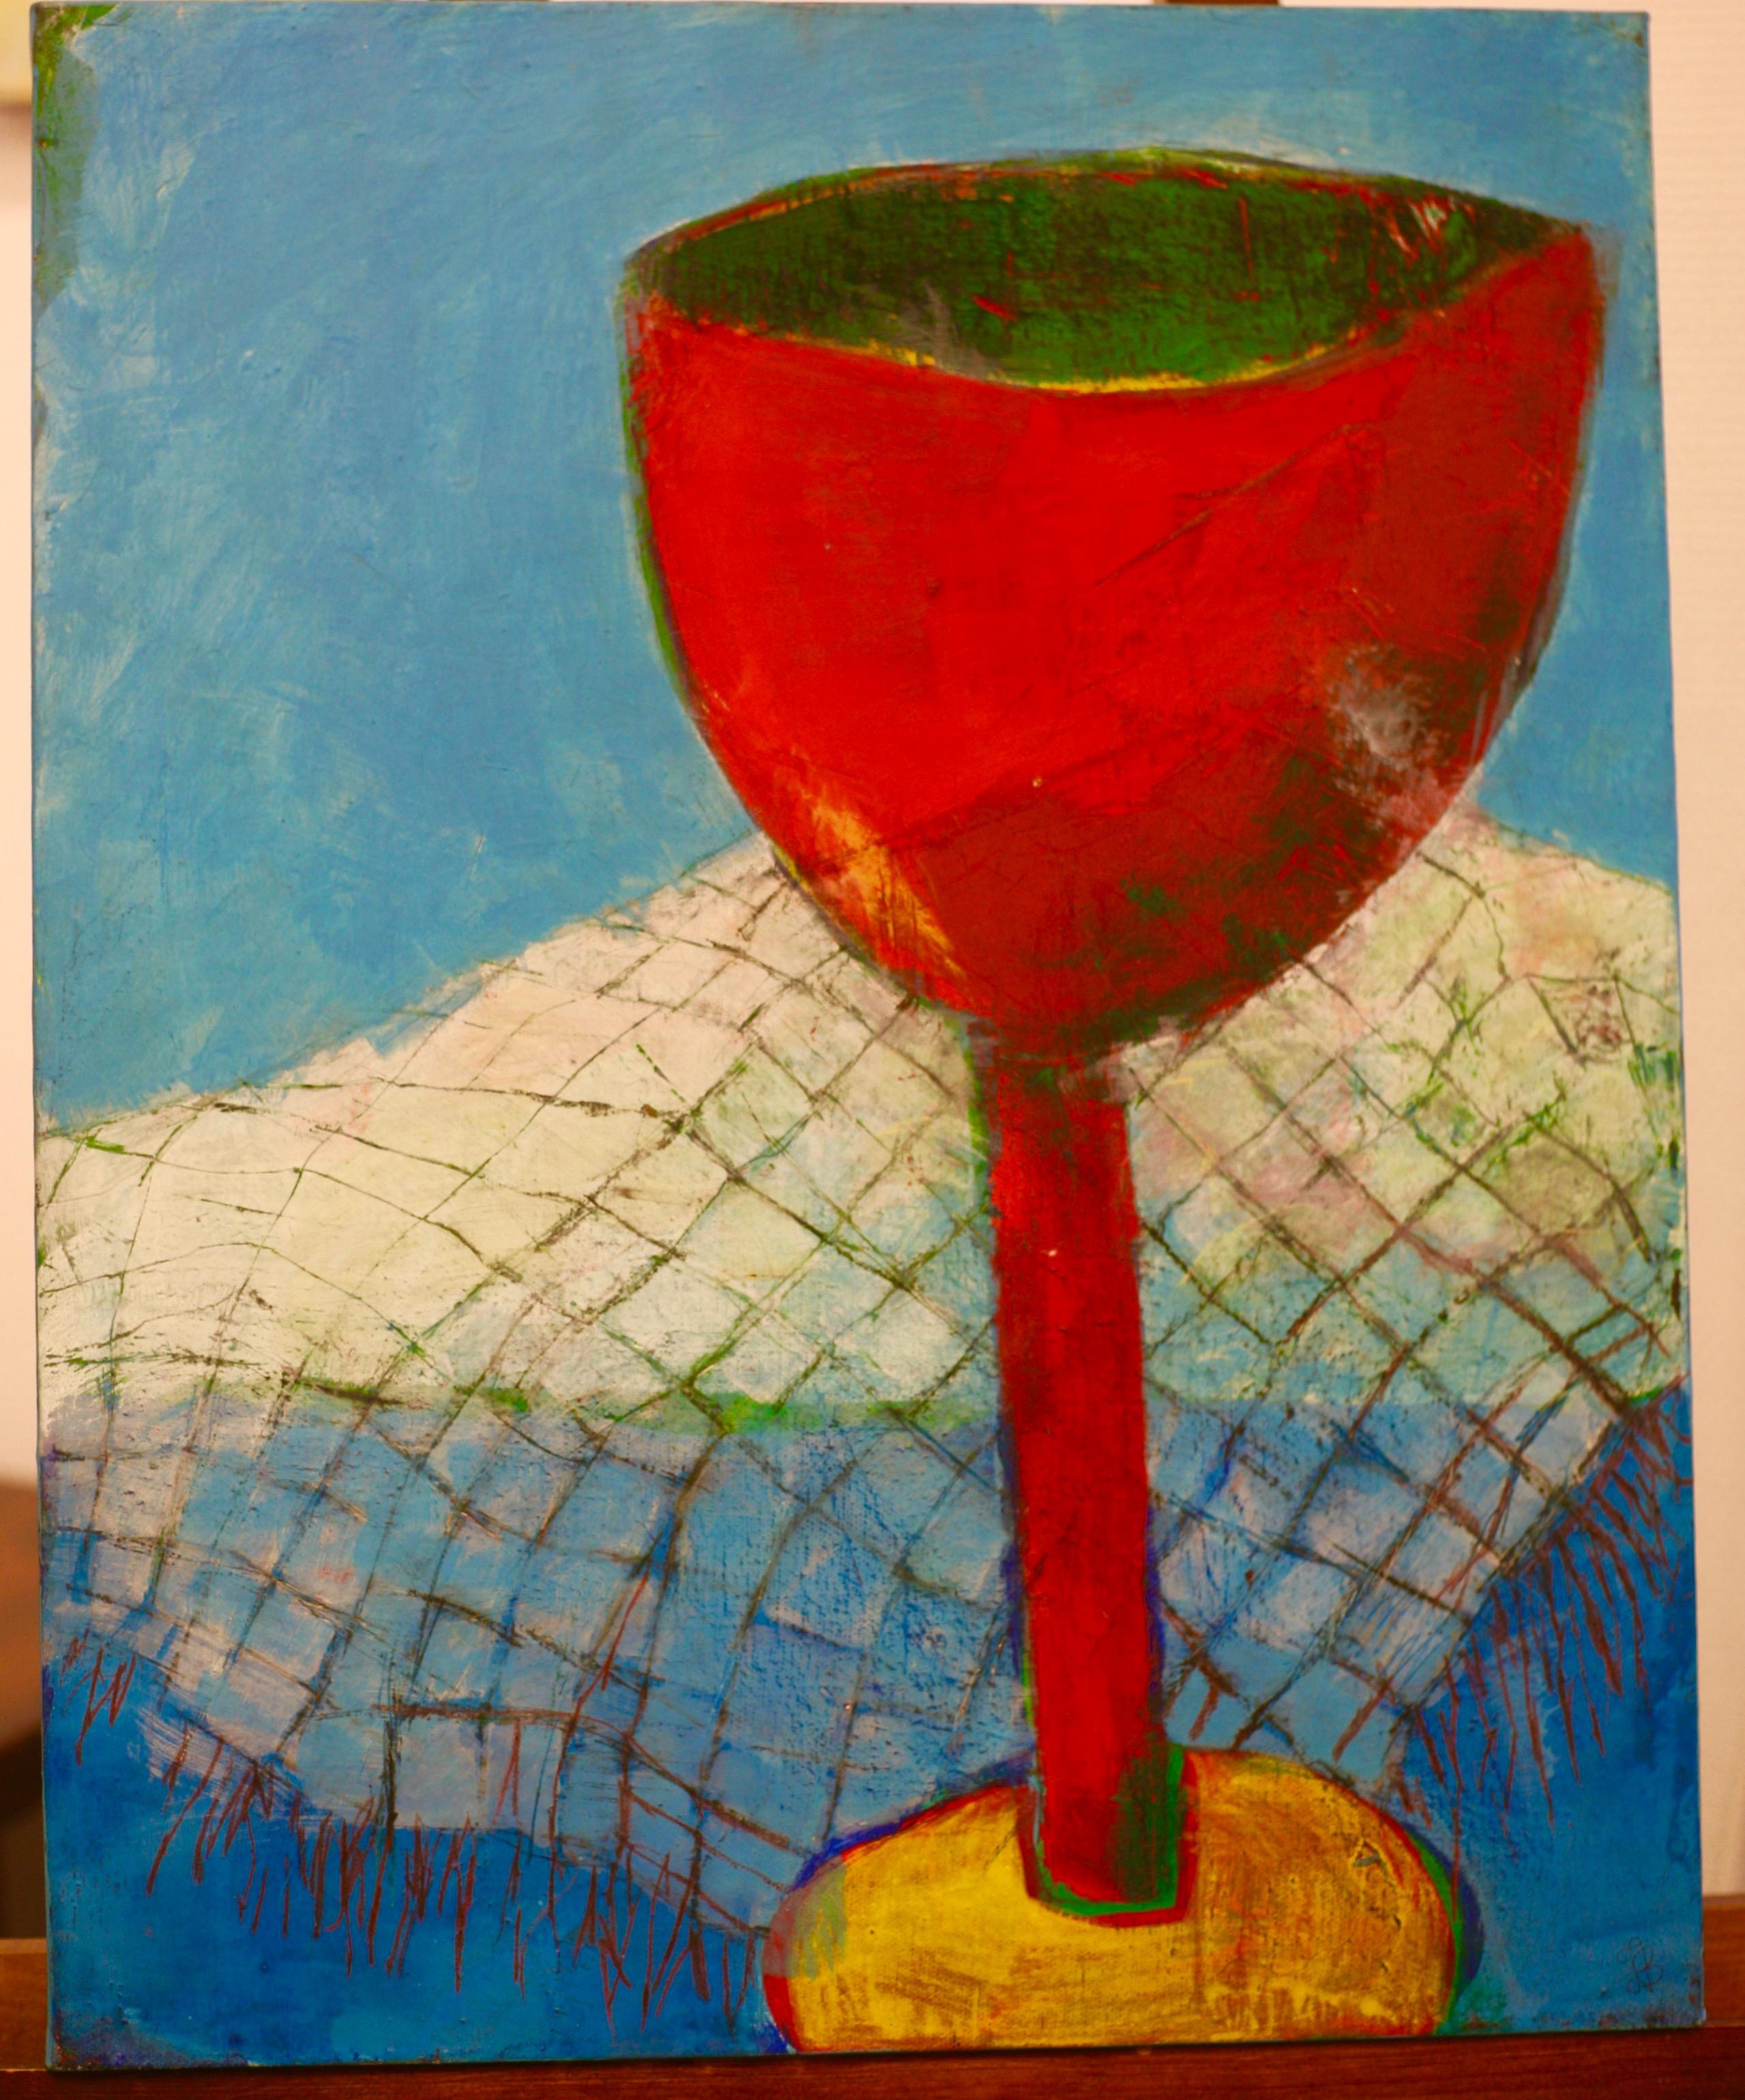 Inga Björstedt - Red glass (Rött glas), oil tempera painting